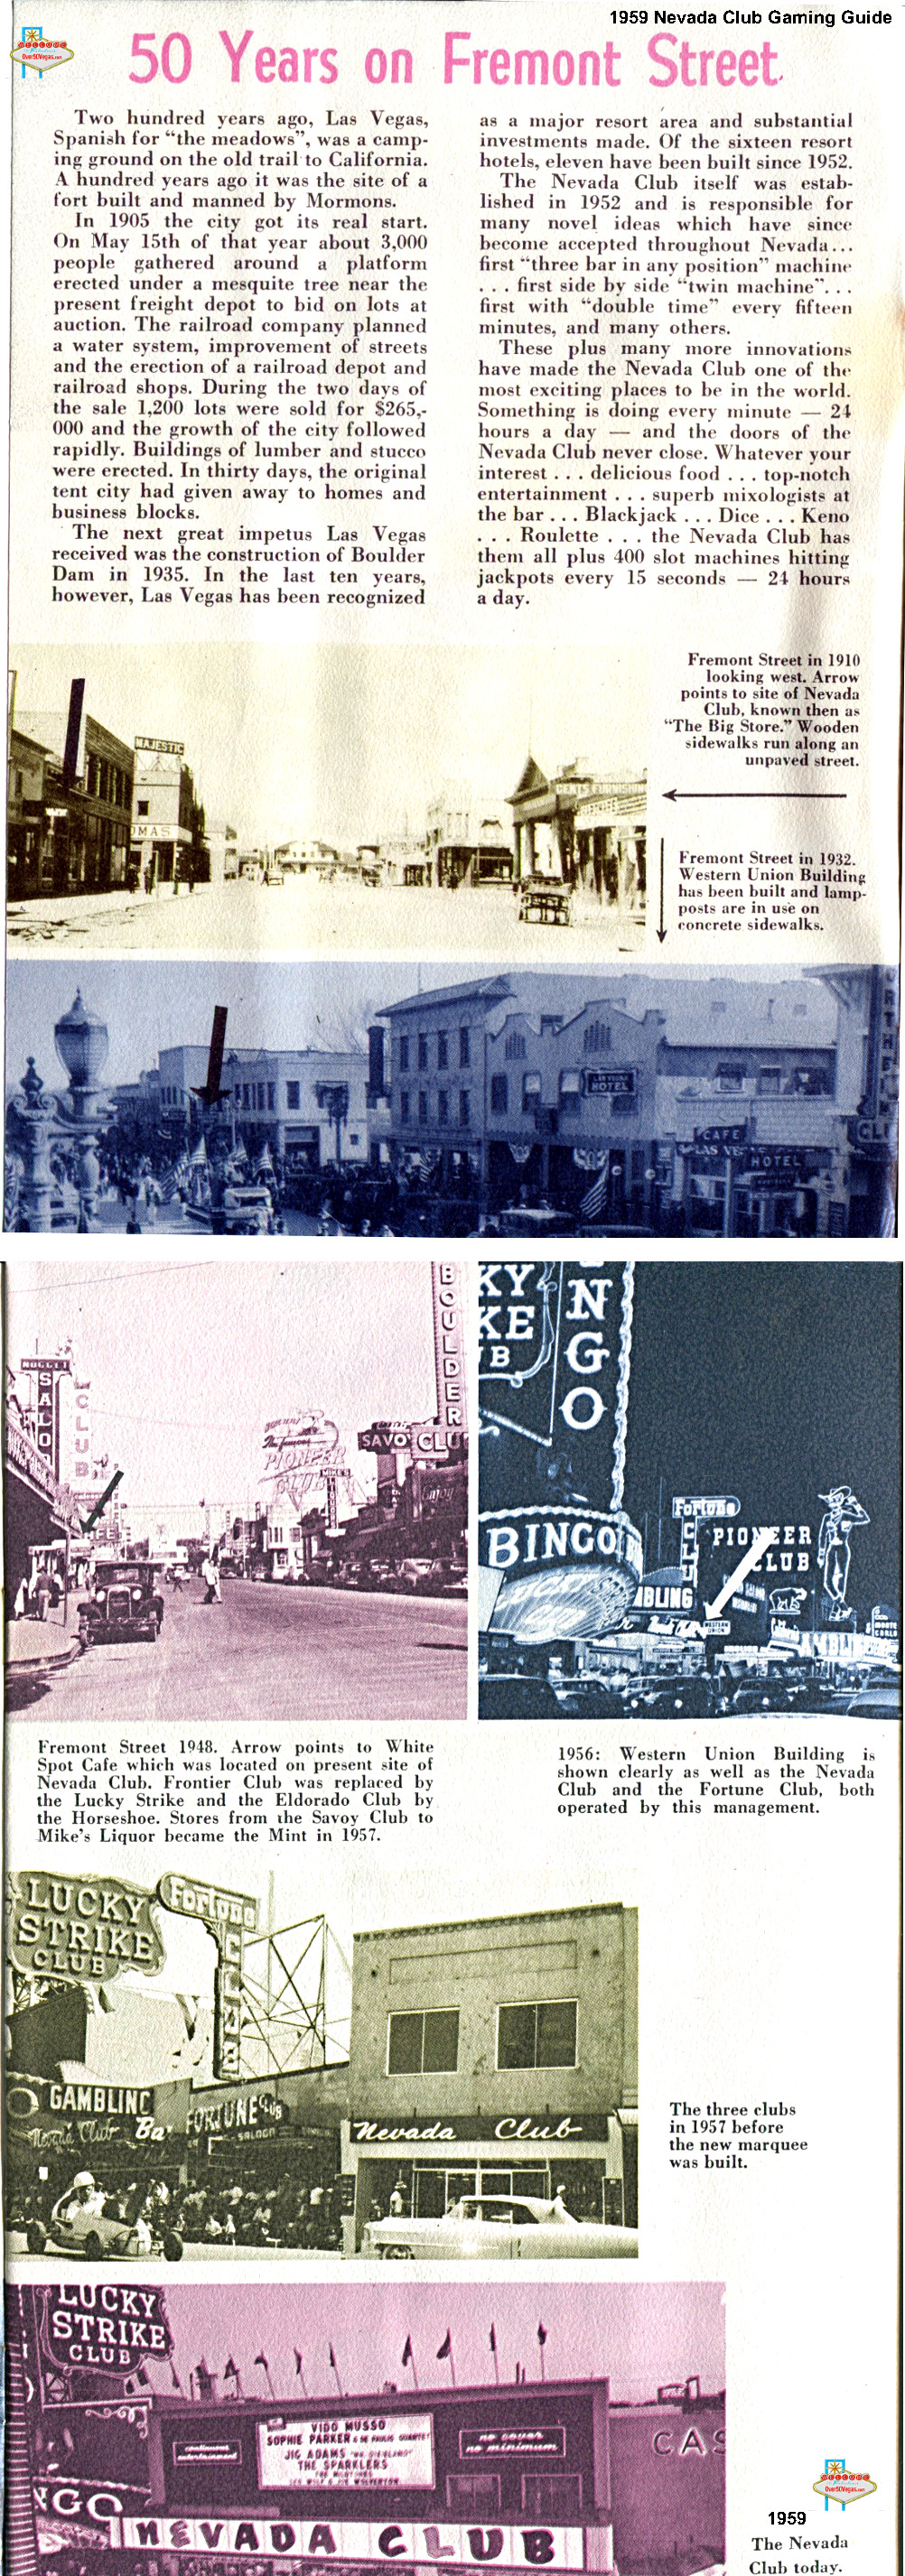 History of Fremont Street from the Nevada Club Gaming Guide 1959